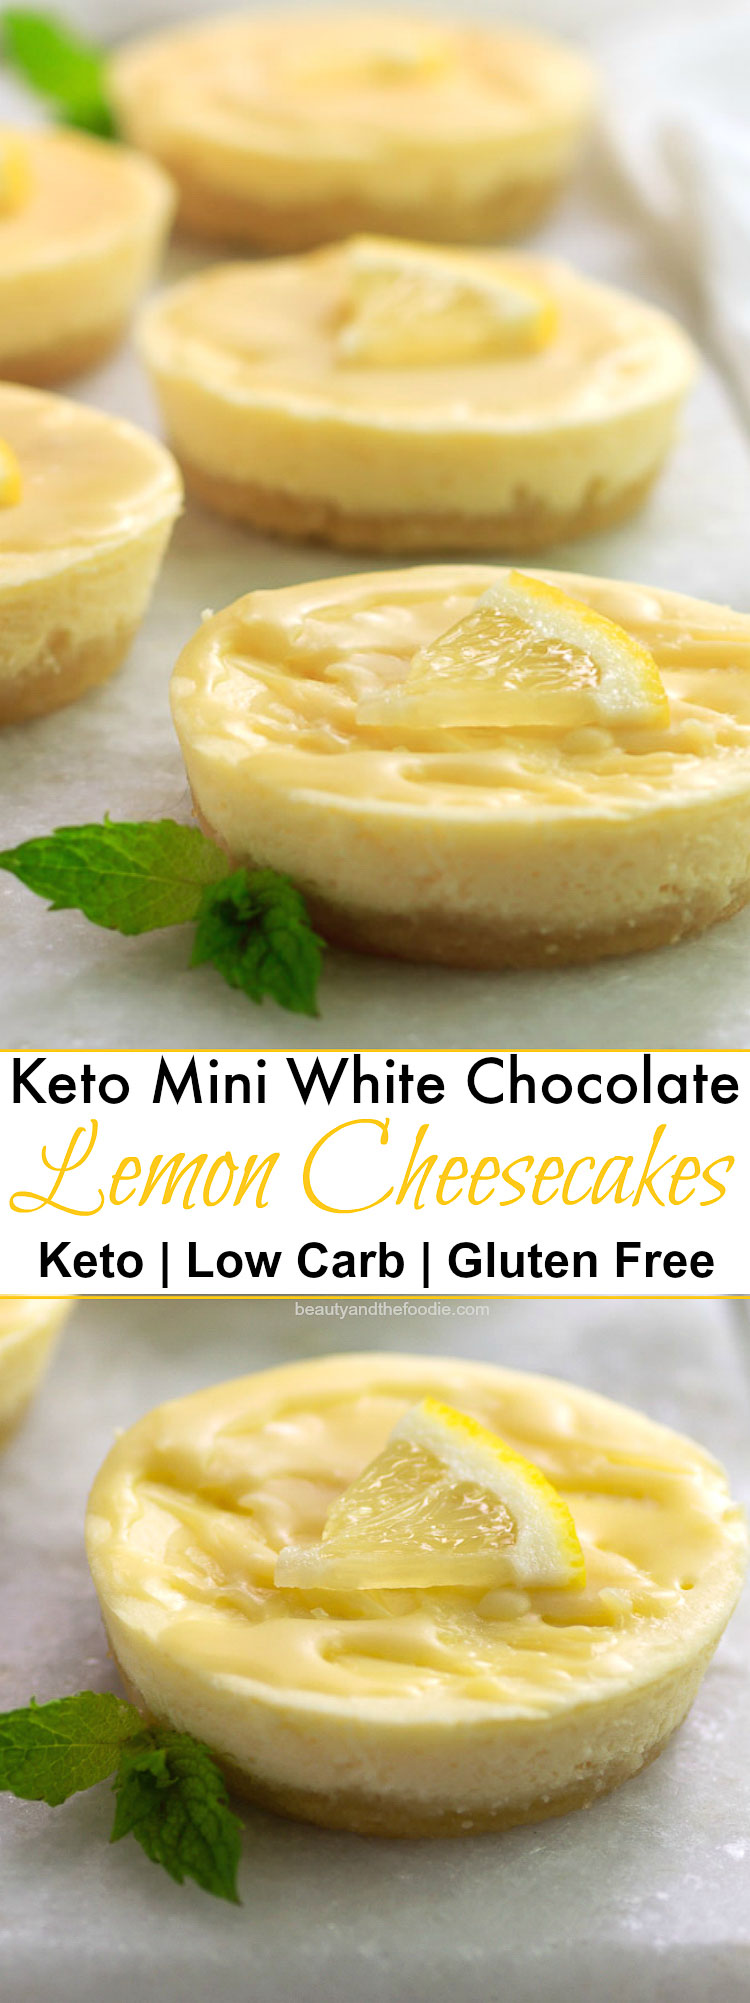 Keto White Chocolate Lemon Cheesecake Minis- Low Carb & Gluten Free